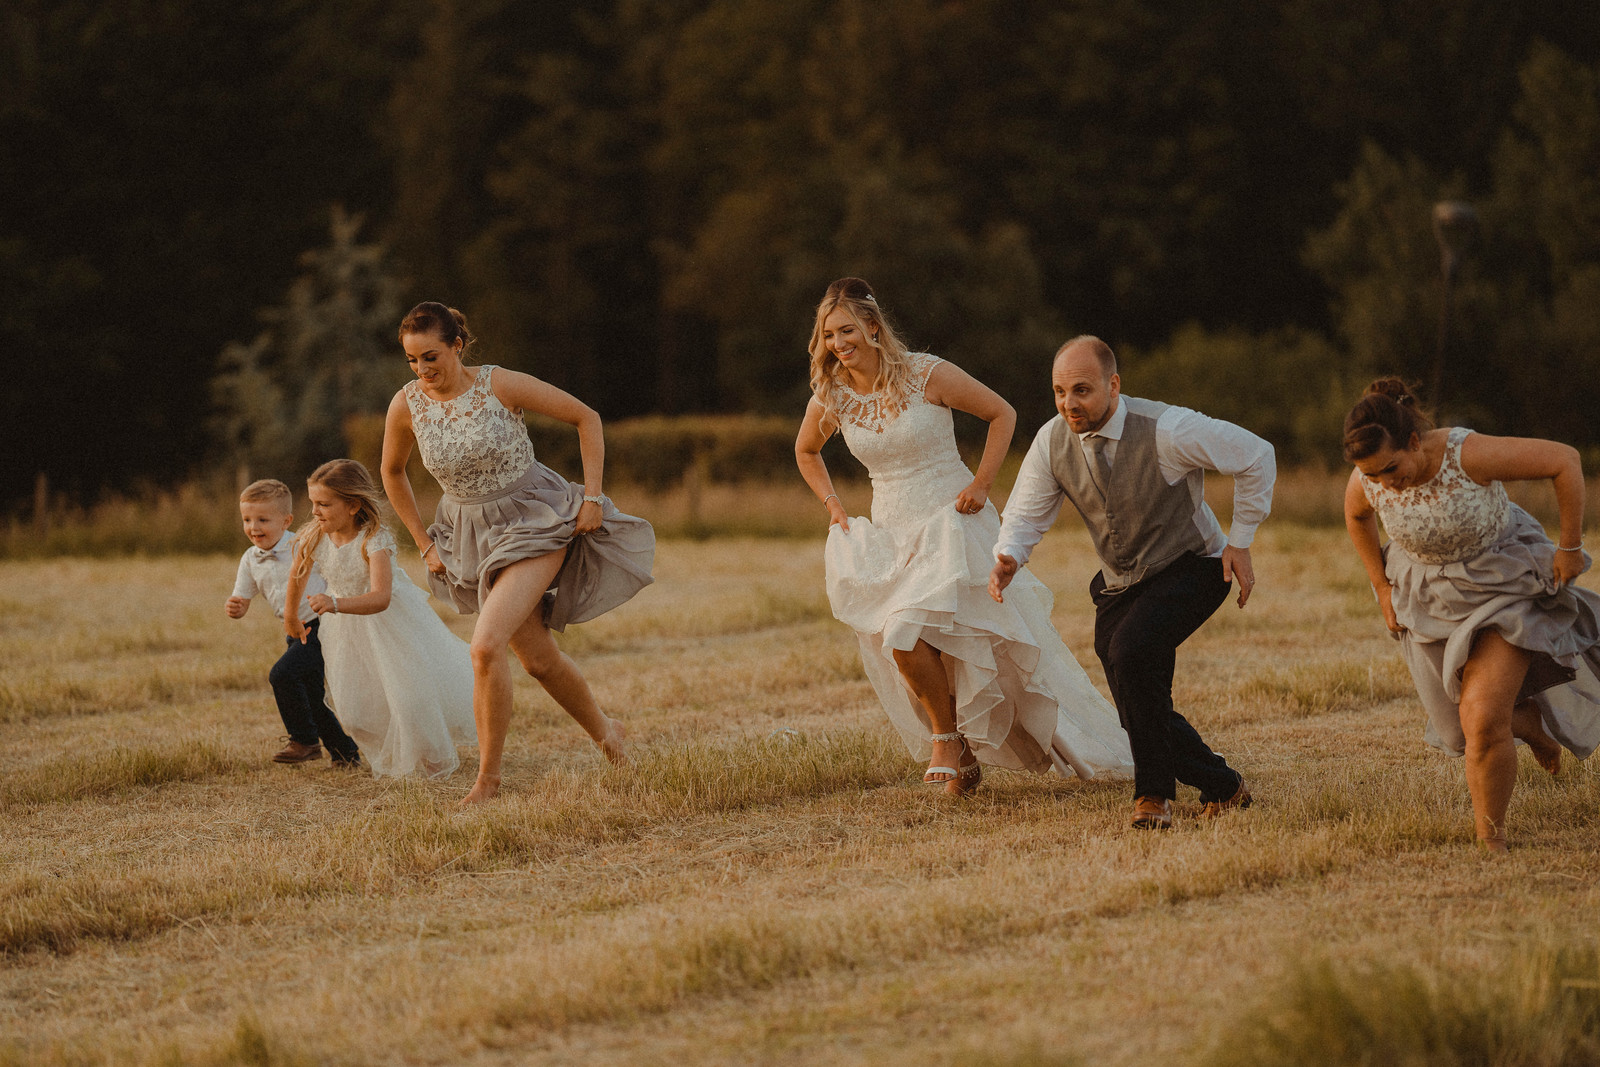 Family photo of everyone running through the country fields